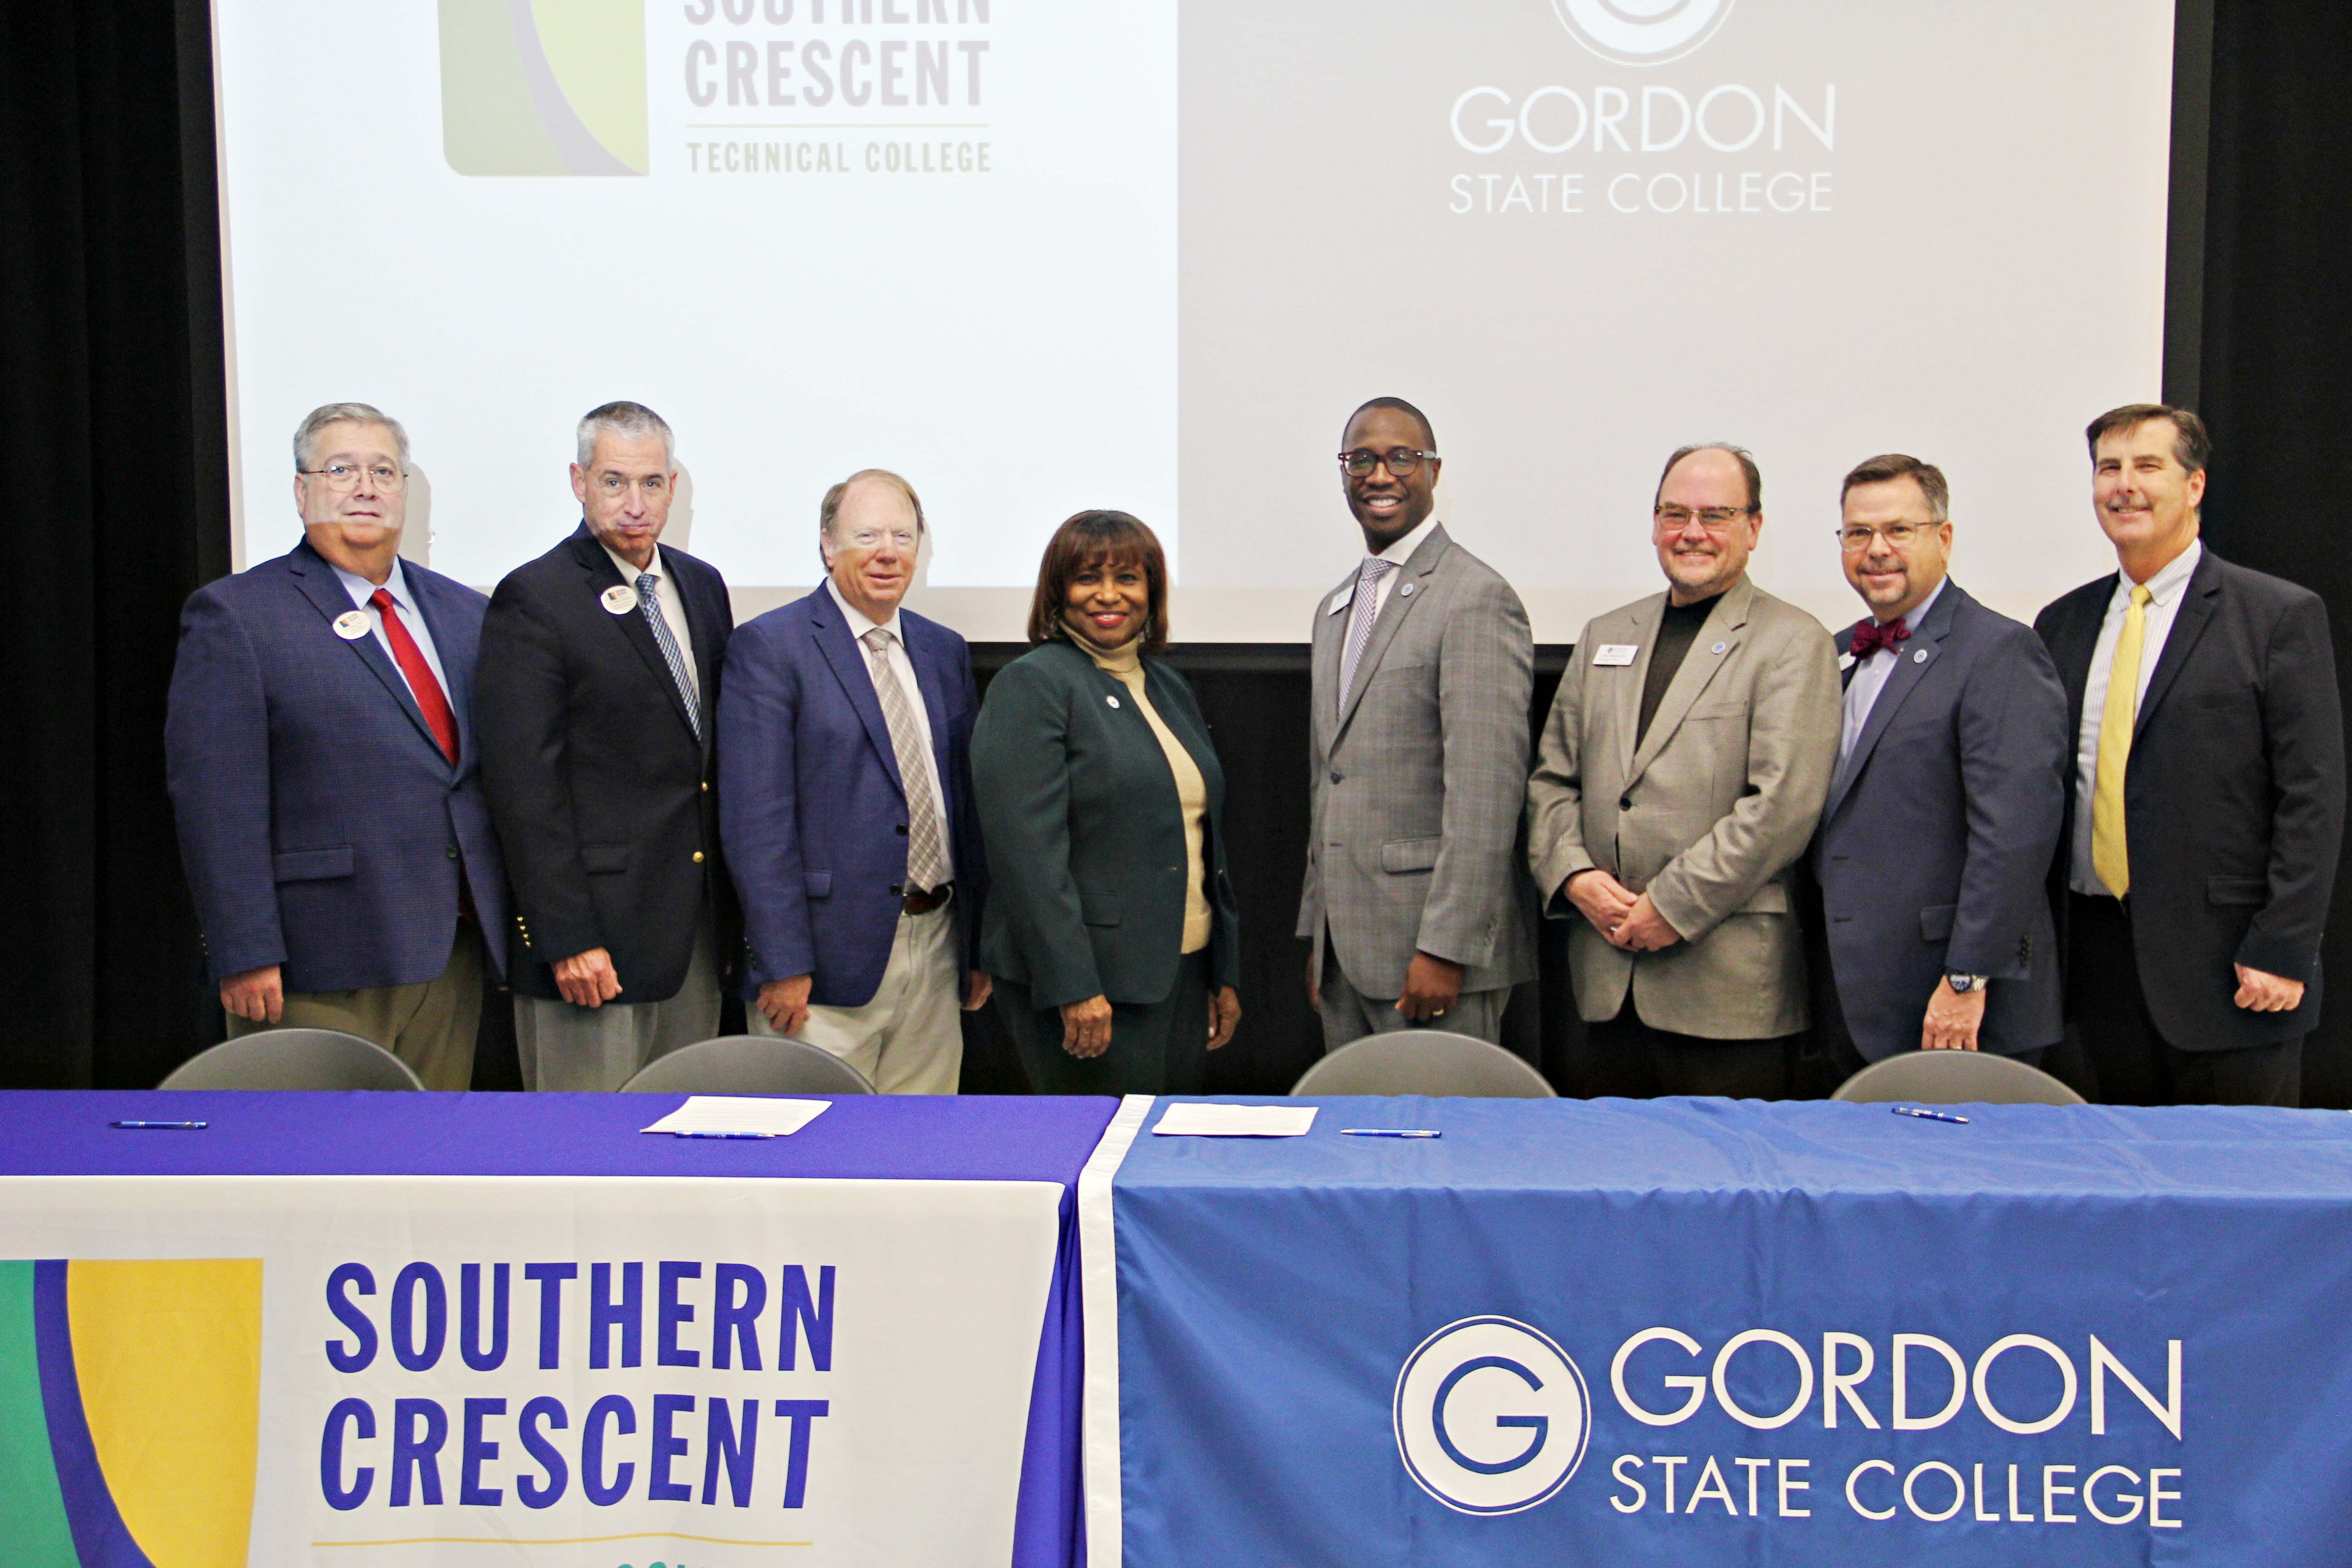 From left, representing Southern Crescent Technical College, Dr. Chris Daniel, Vice President for Institutional Advancement; Dr. Mark Andrews, Executive Vice President; Dr. Steve Pearce, Vice President for Academic Affairs; Dr. Alvetta P. Thomas, President, representing Gordon State College, Dr. Kirk A. Nooks, GSC President; Dr. C. Jeffery Knighton, Provost & Vice President for Academic Affairs; Dr. John Head, Vice President for Enrollment Management and Student Affairs and Dr. Ric Calhoun, Assistant Vice President of Innovative Education and Strategic Initiatives.